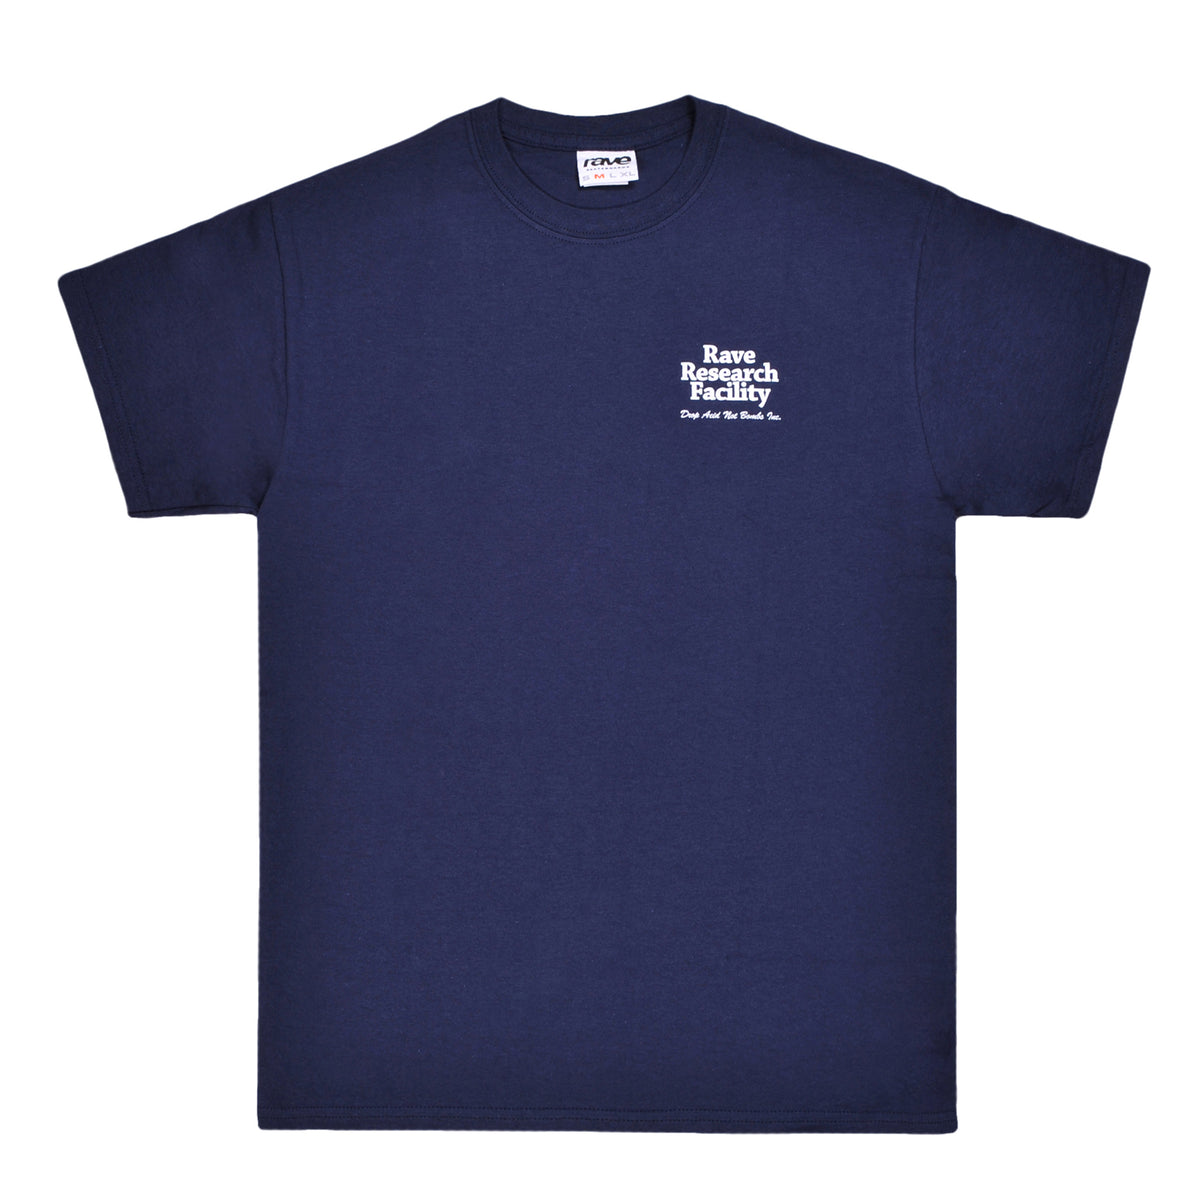 RAVE RESEARCH FACILITY navy tee - RAVE skateboards